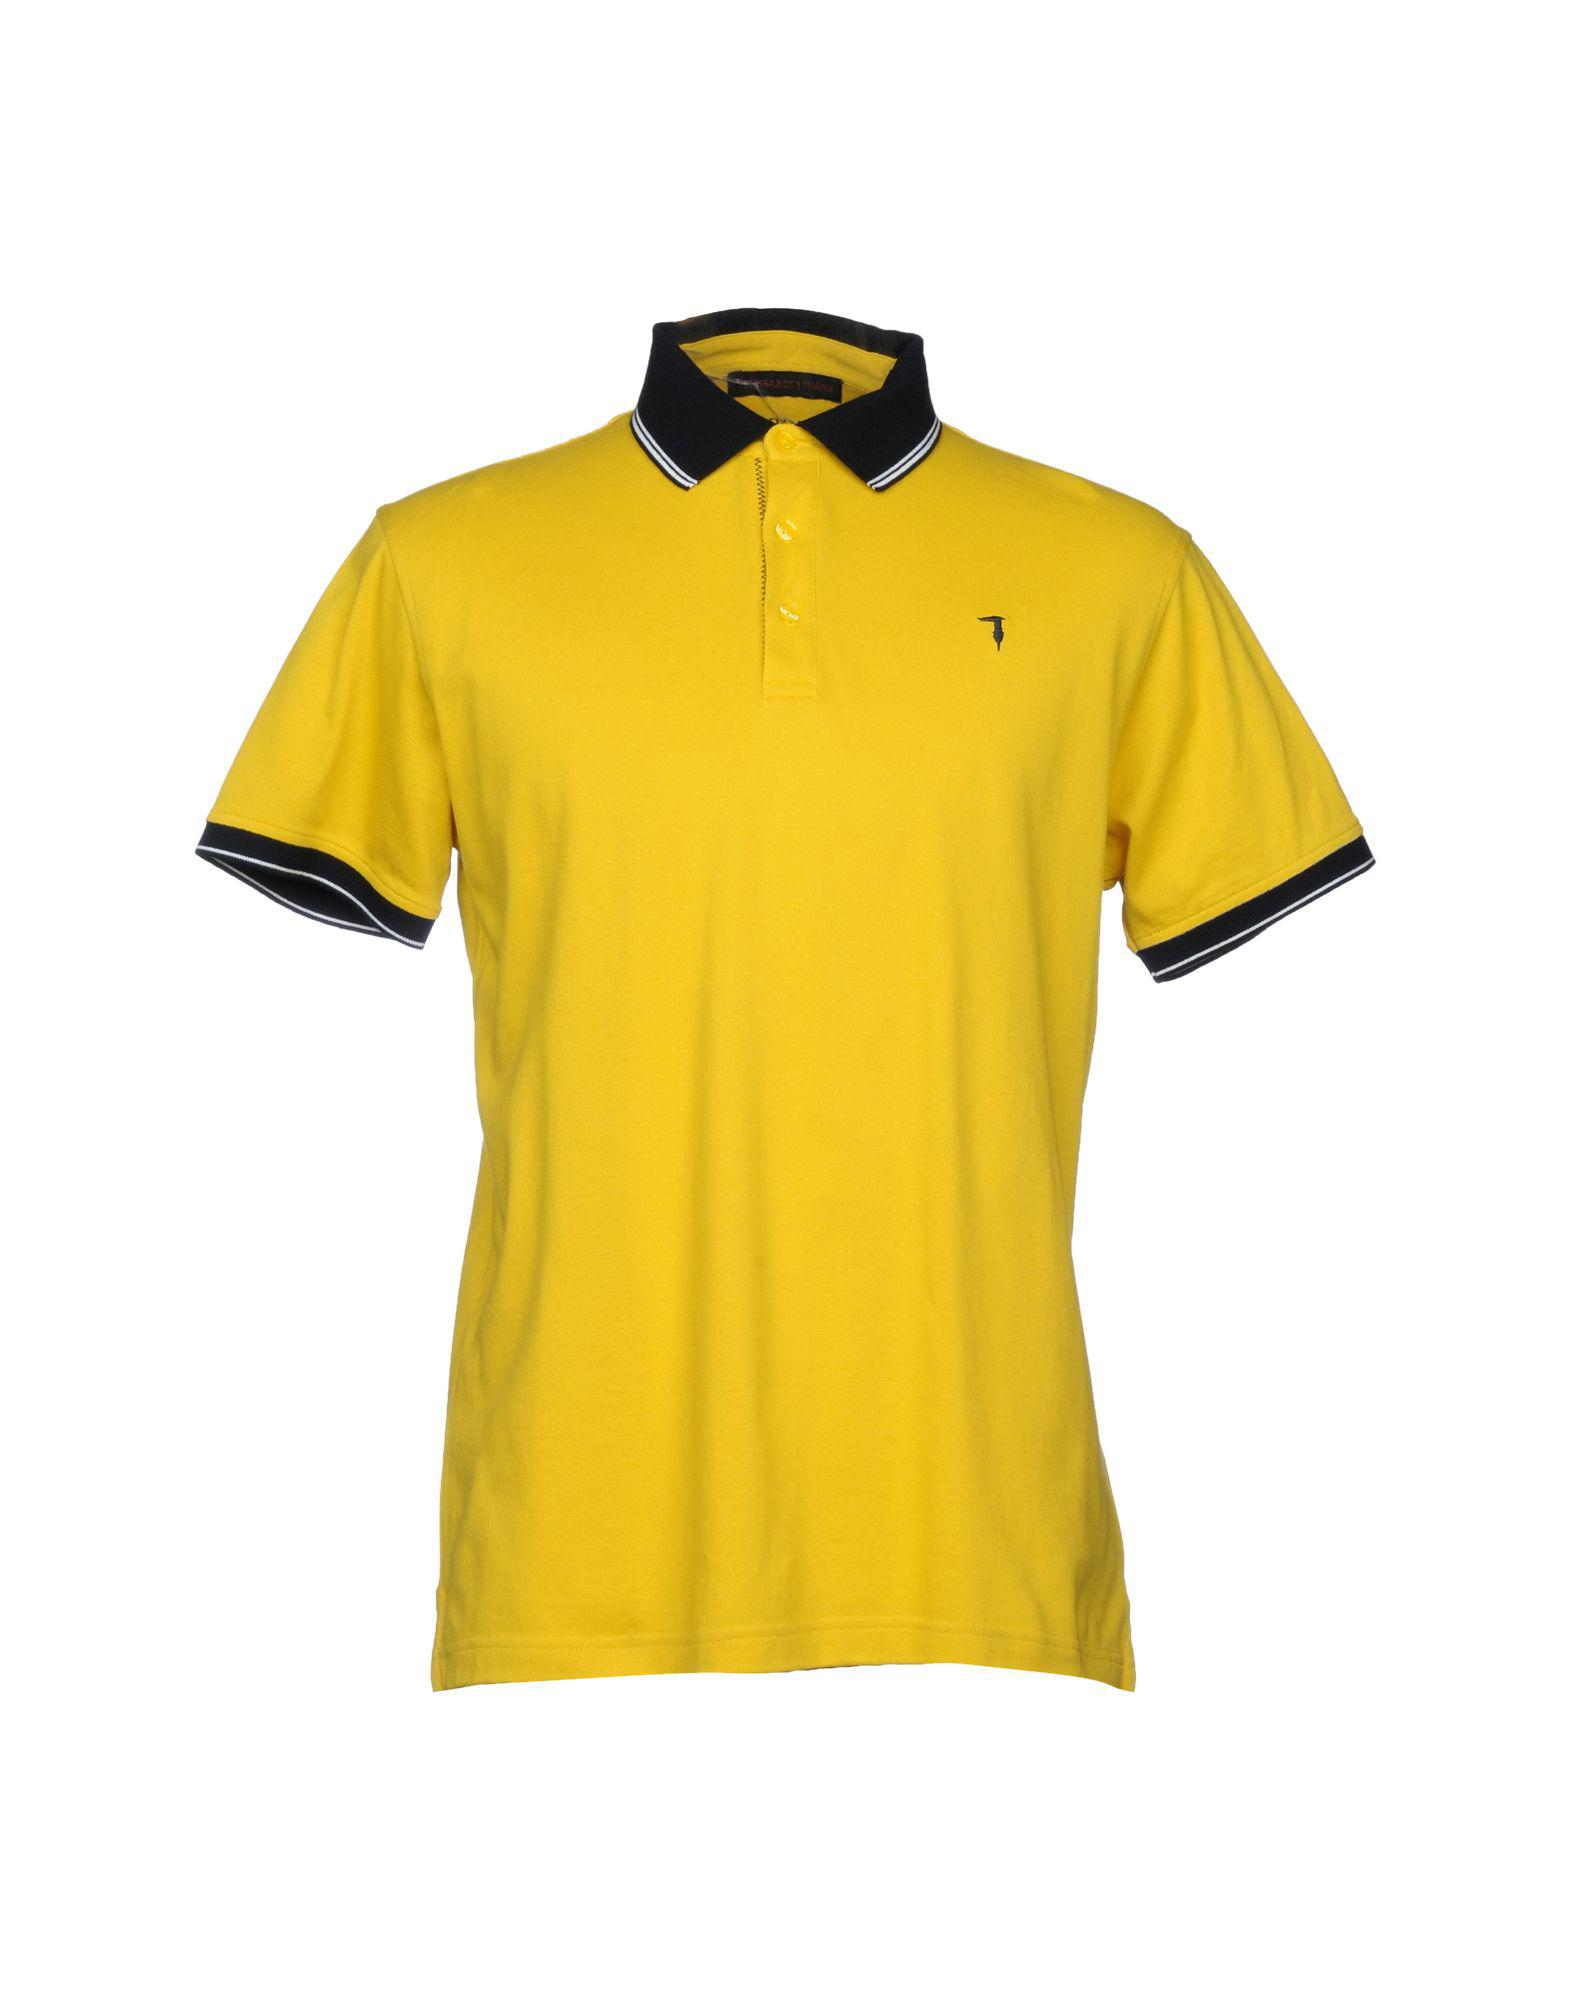 70af9d2a6 Black And Yellow Polo Shirts